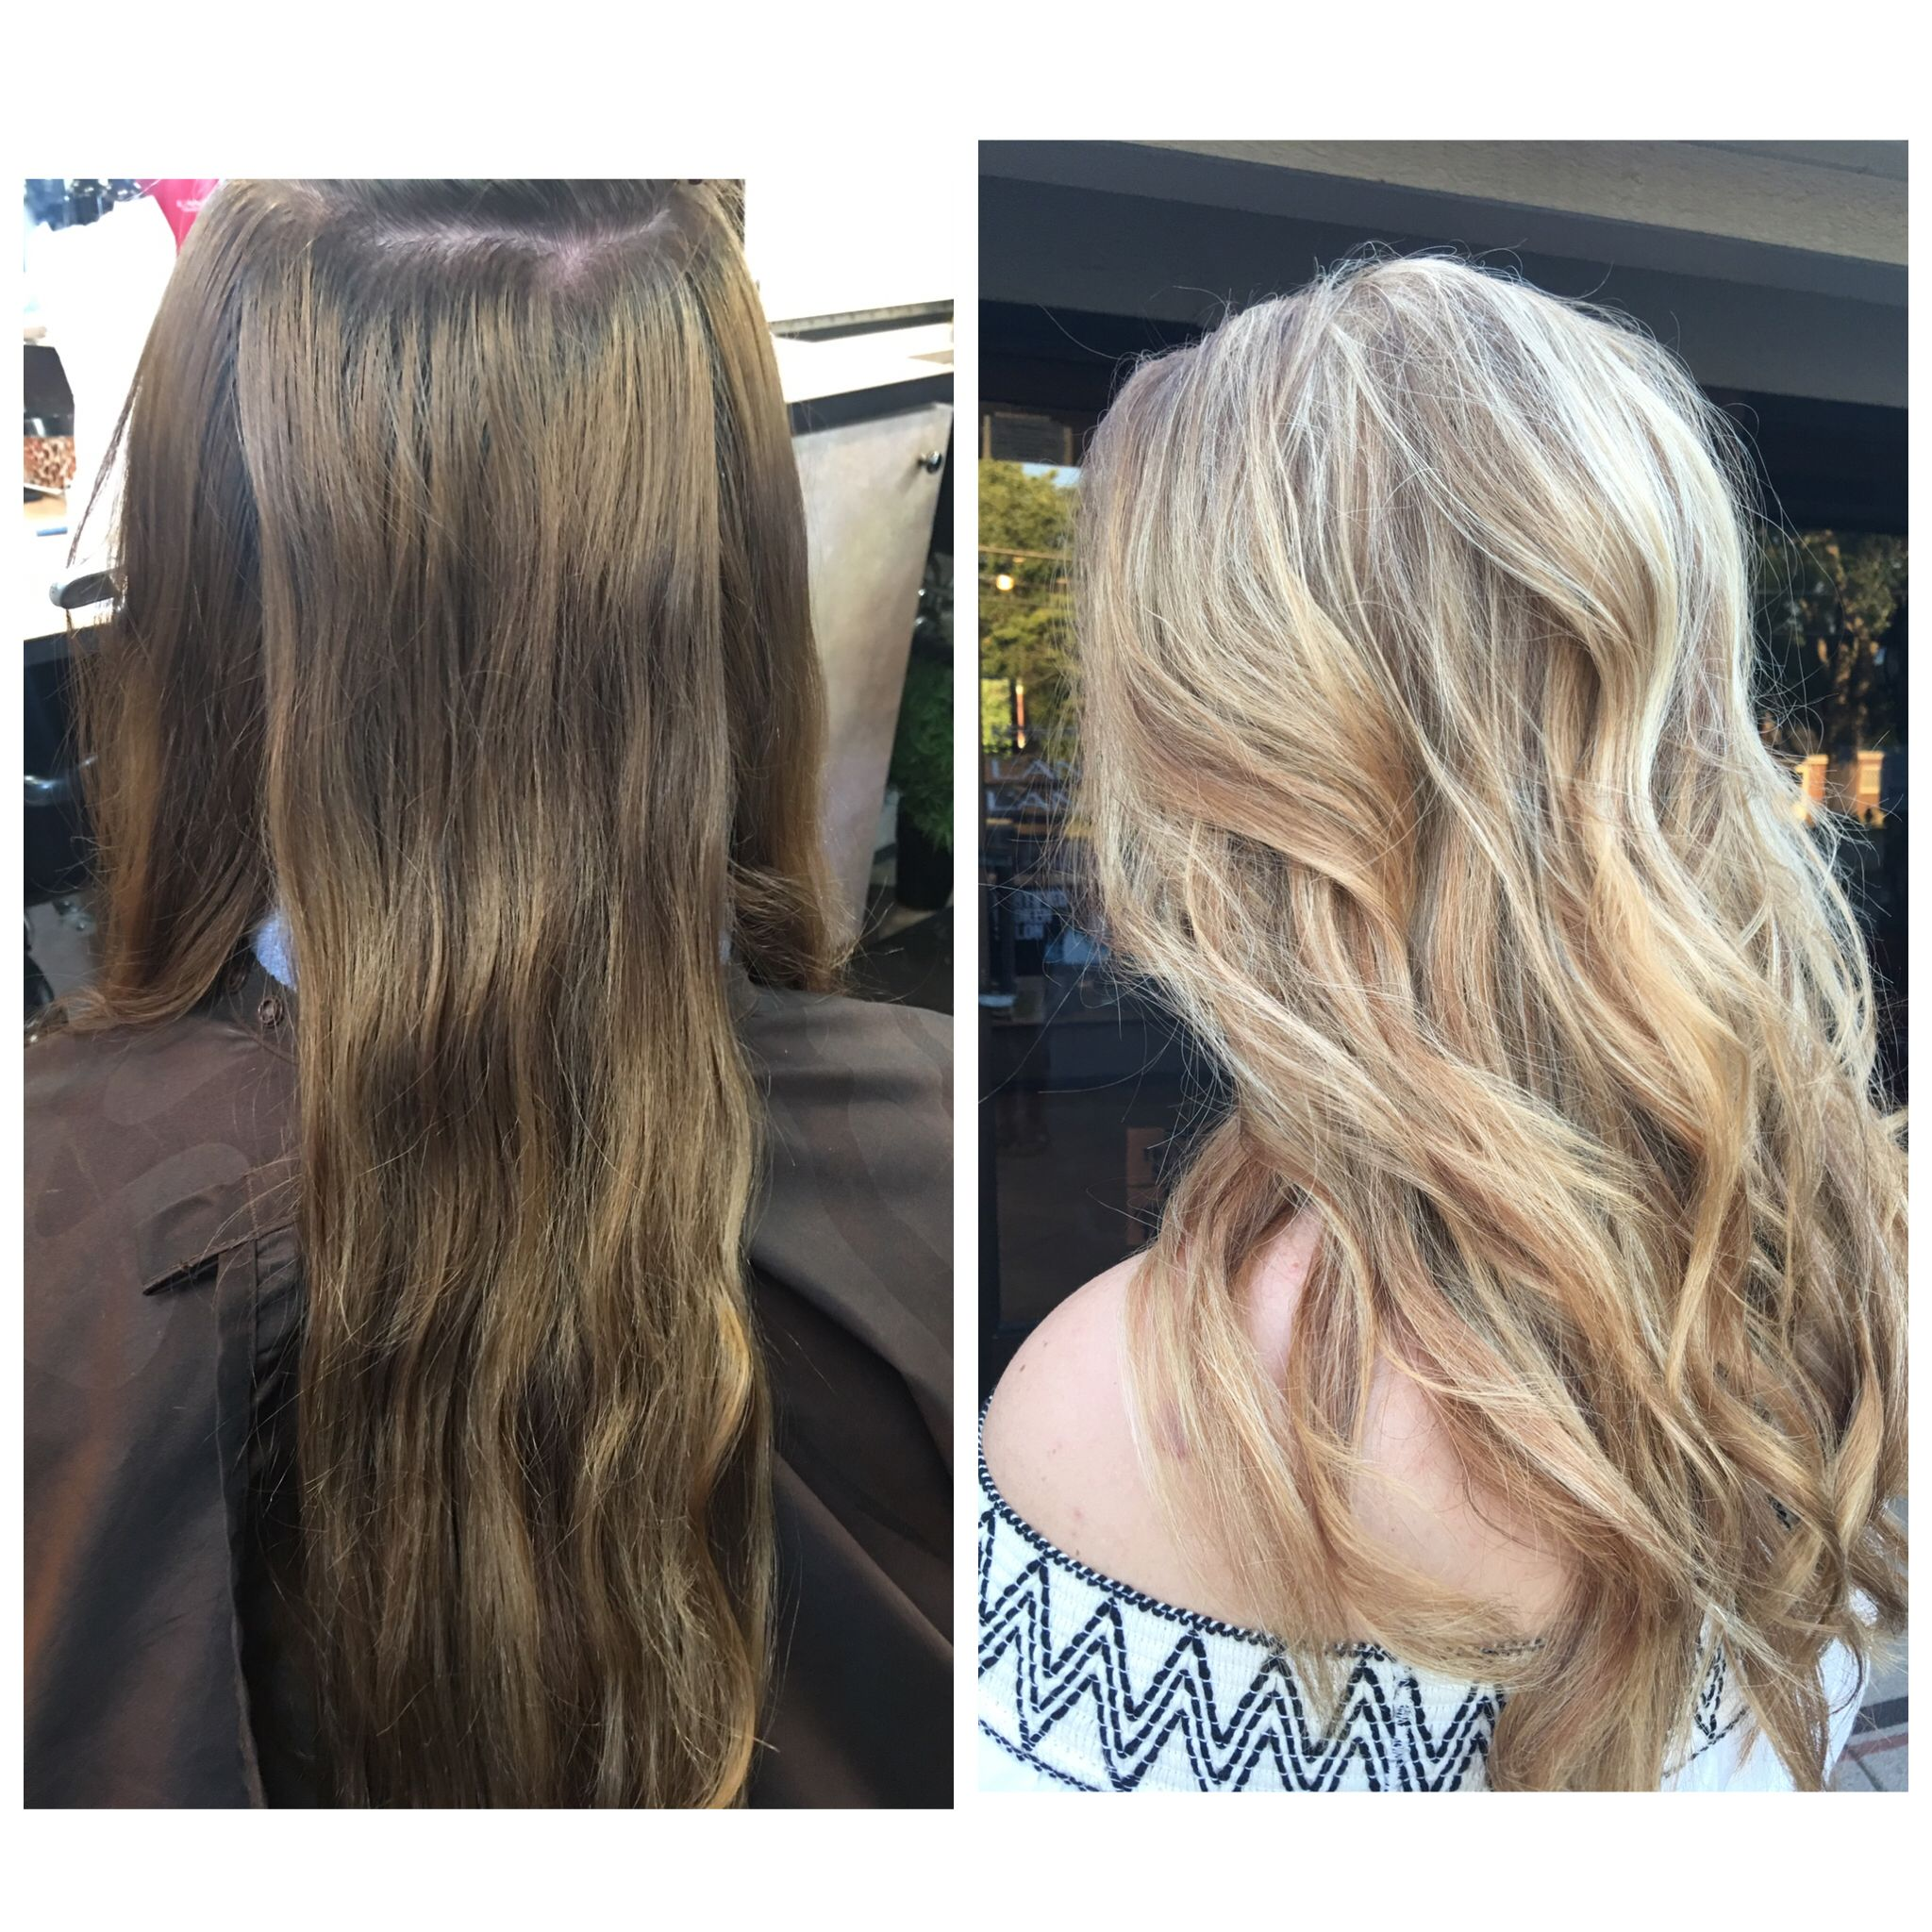 Redken Flashlight Balayage Blonde Hair Before And After Hair